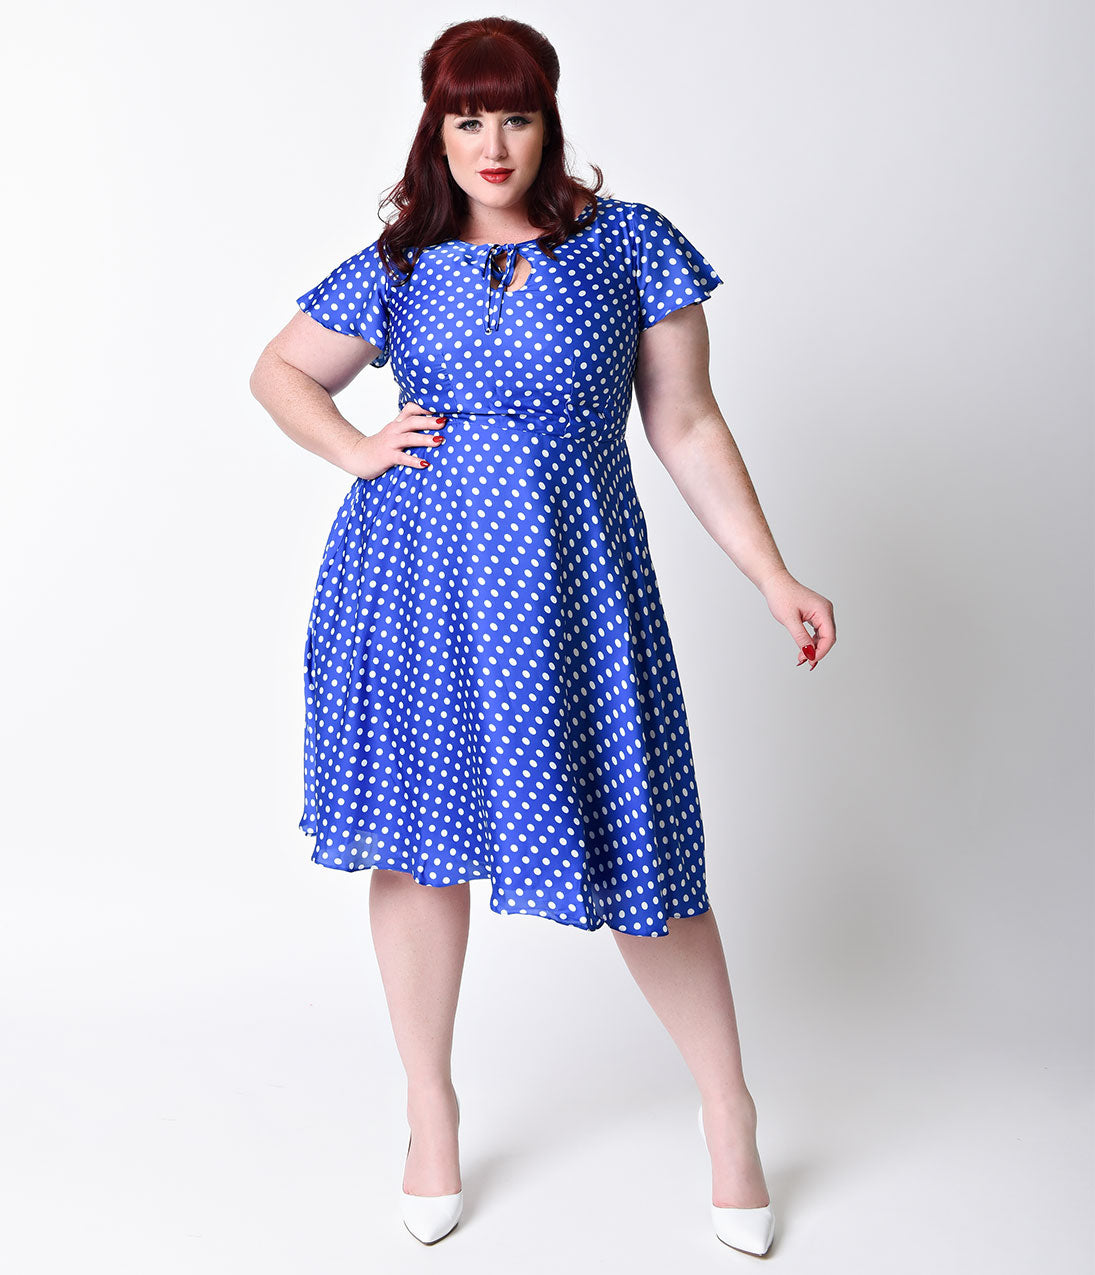 1940s Plus Size Dresses | Swing Dress, Tea Dress 1940s Style Royal Blue  White Dot Formosa Swing Dress $66.00 AT vintagedancer.com